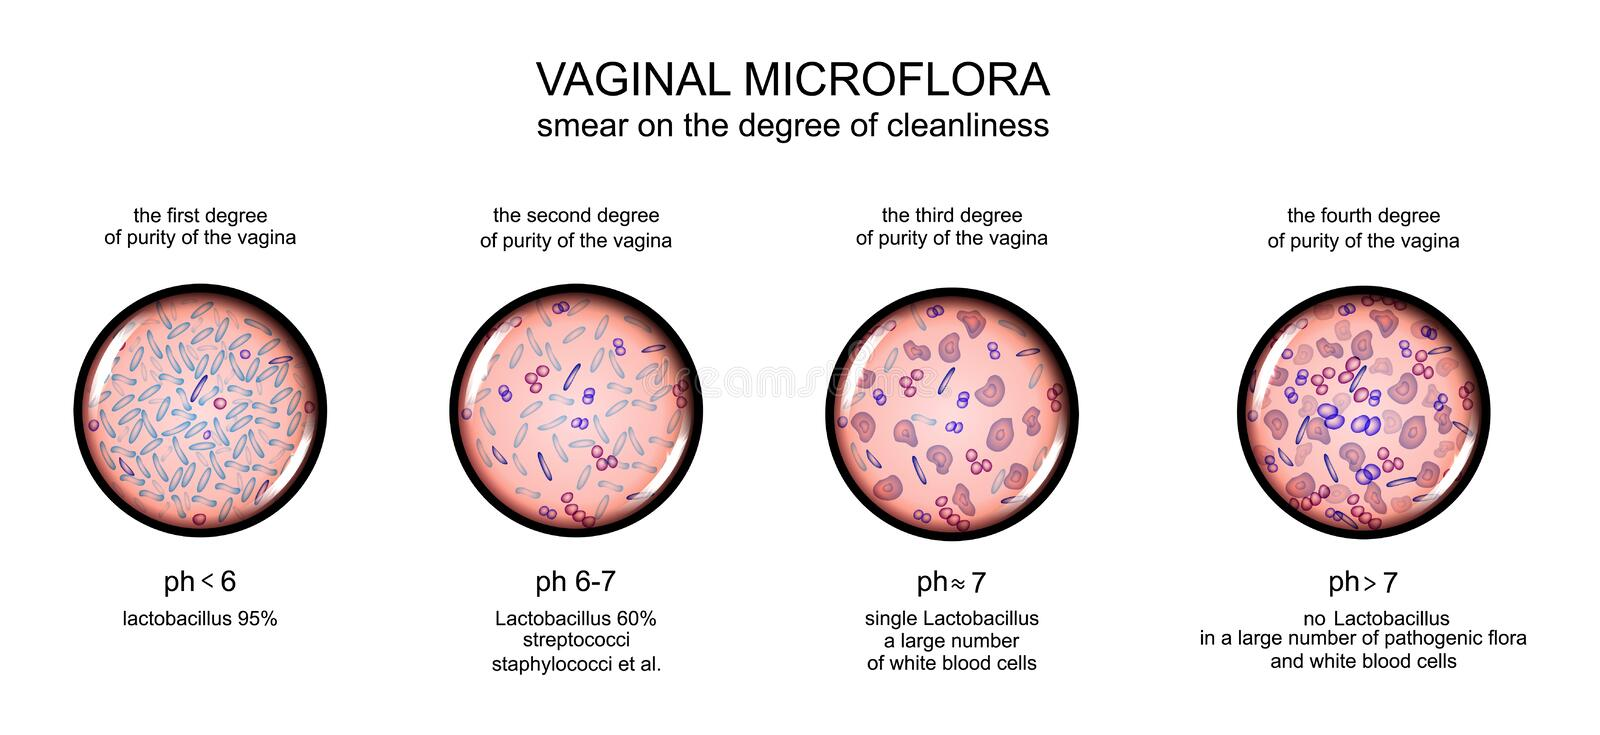 Vaginal microflora grad av renhet av slidan royaltyfri illustrationer